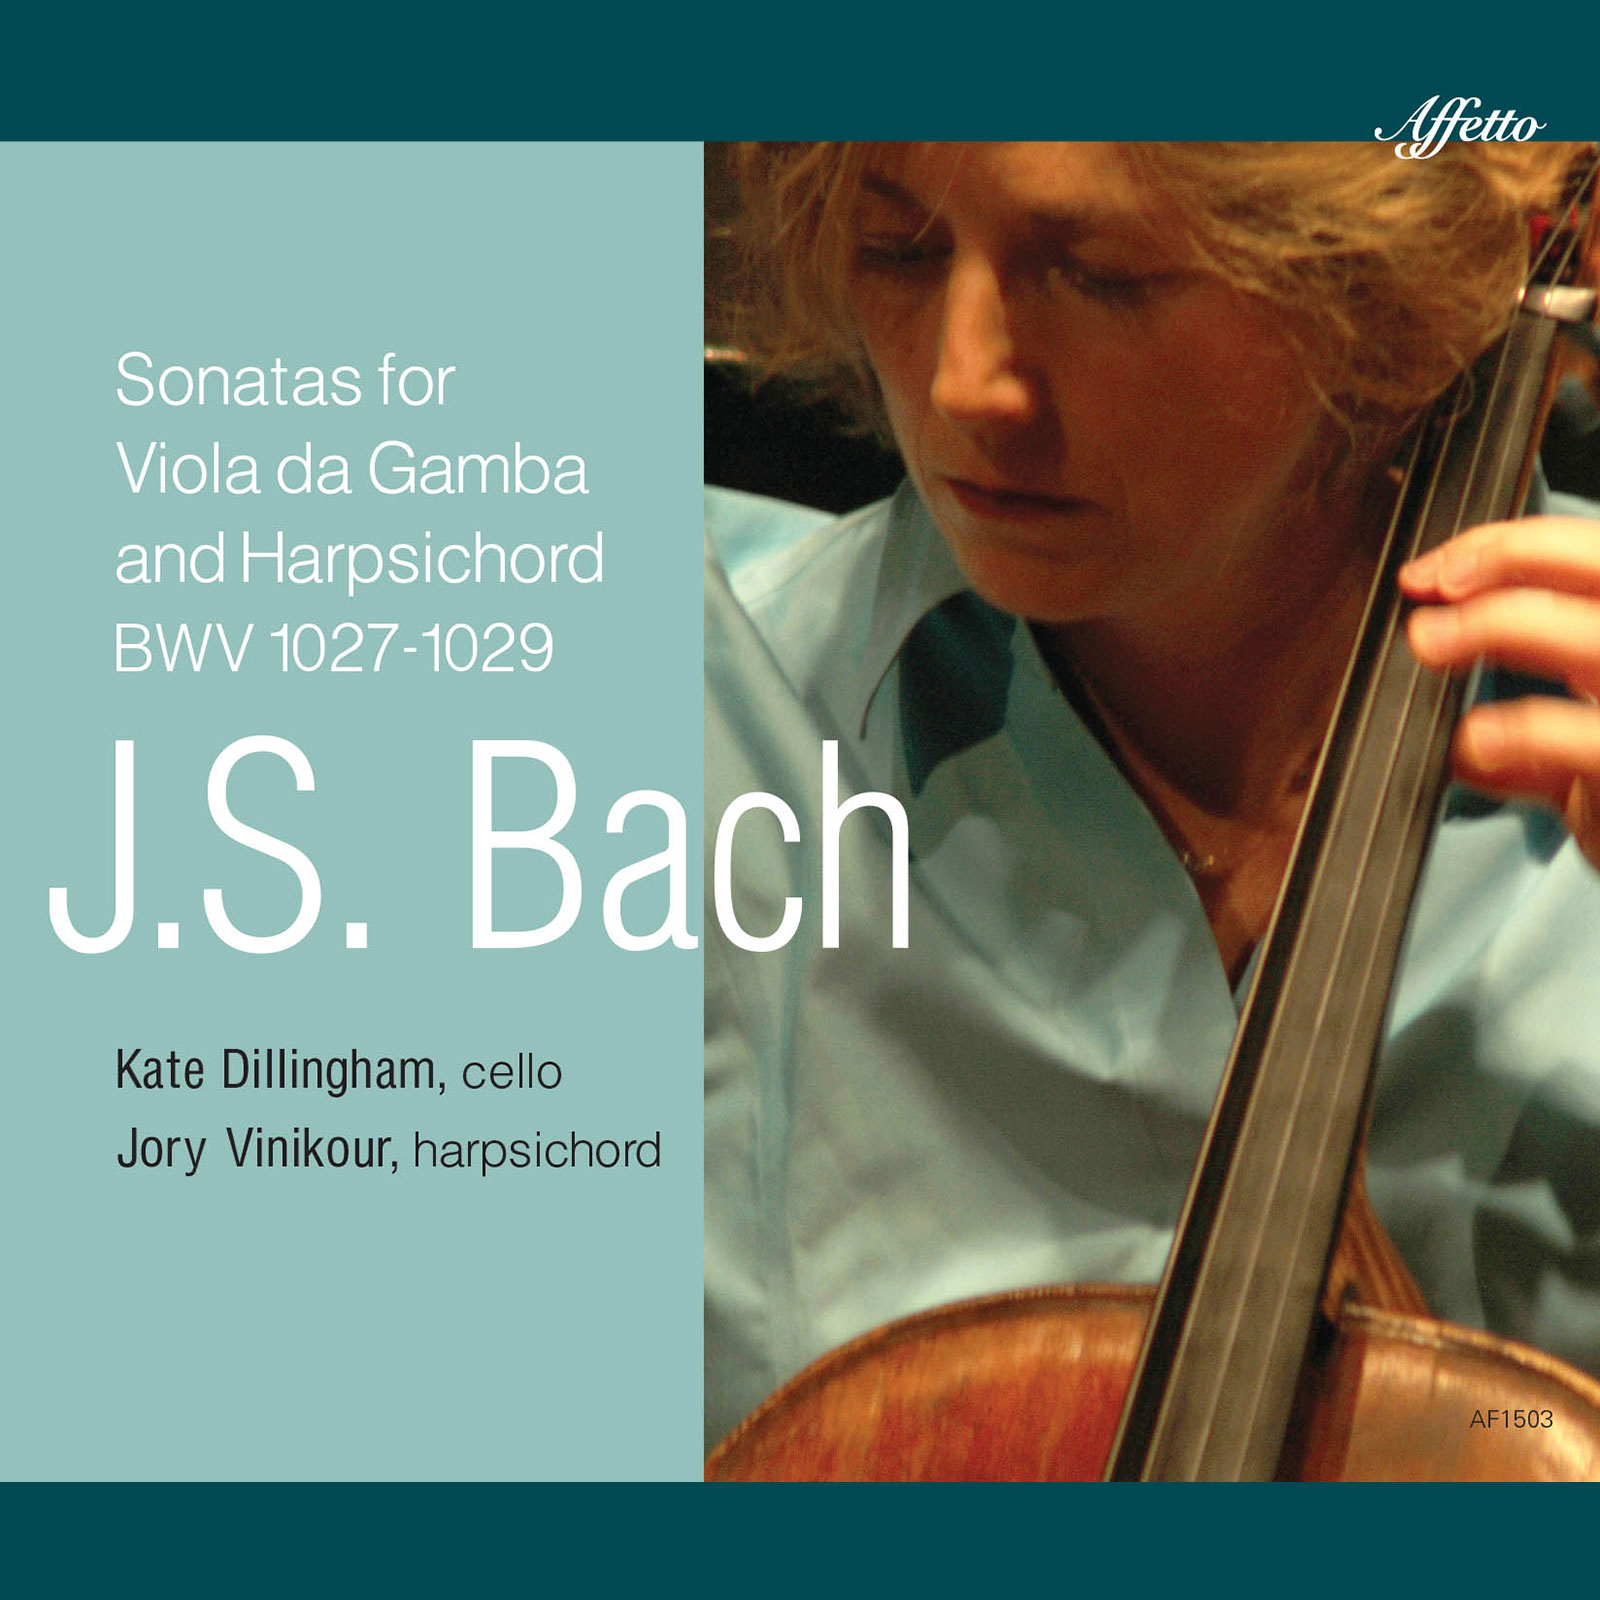 J.S. Bach Three Sonatas for Viola da Gamba and Harpsichord, BWV 1027-1029